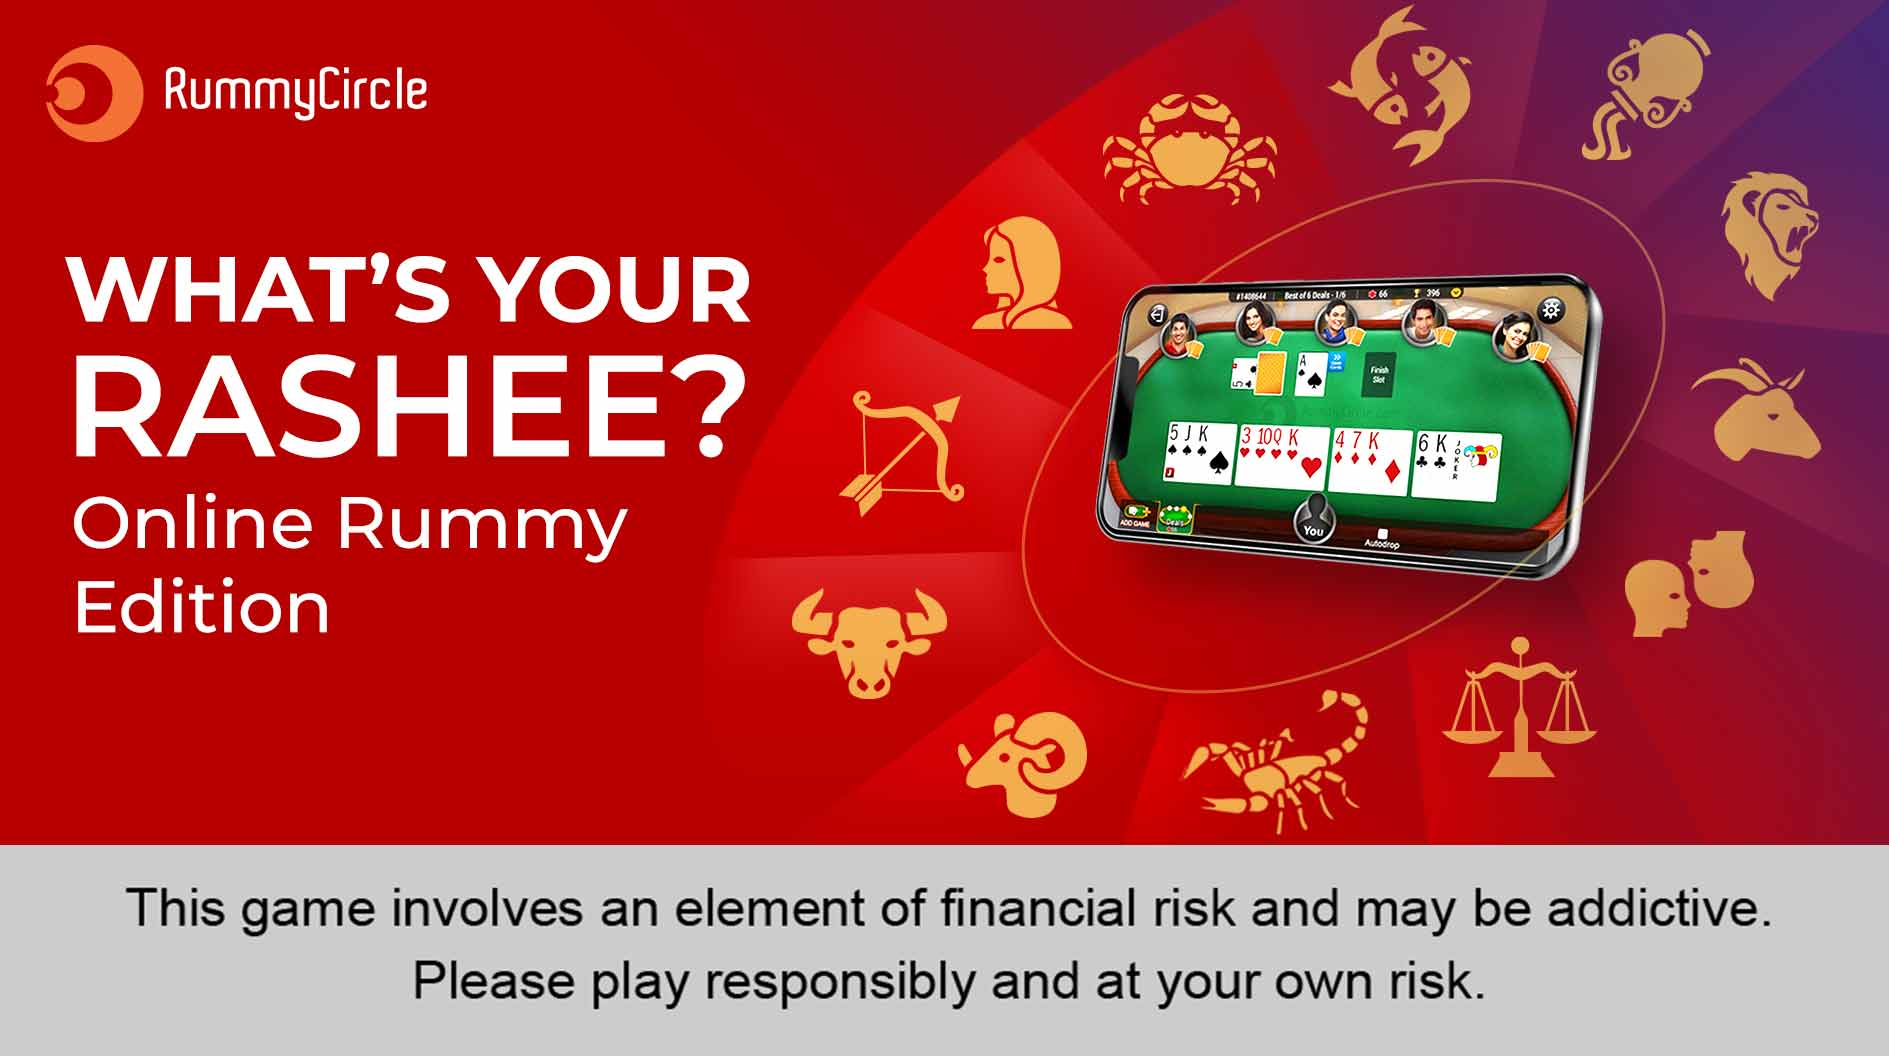 WHAT'S YOUR RASHEE? ONLINE RUMMY EDITION